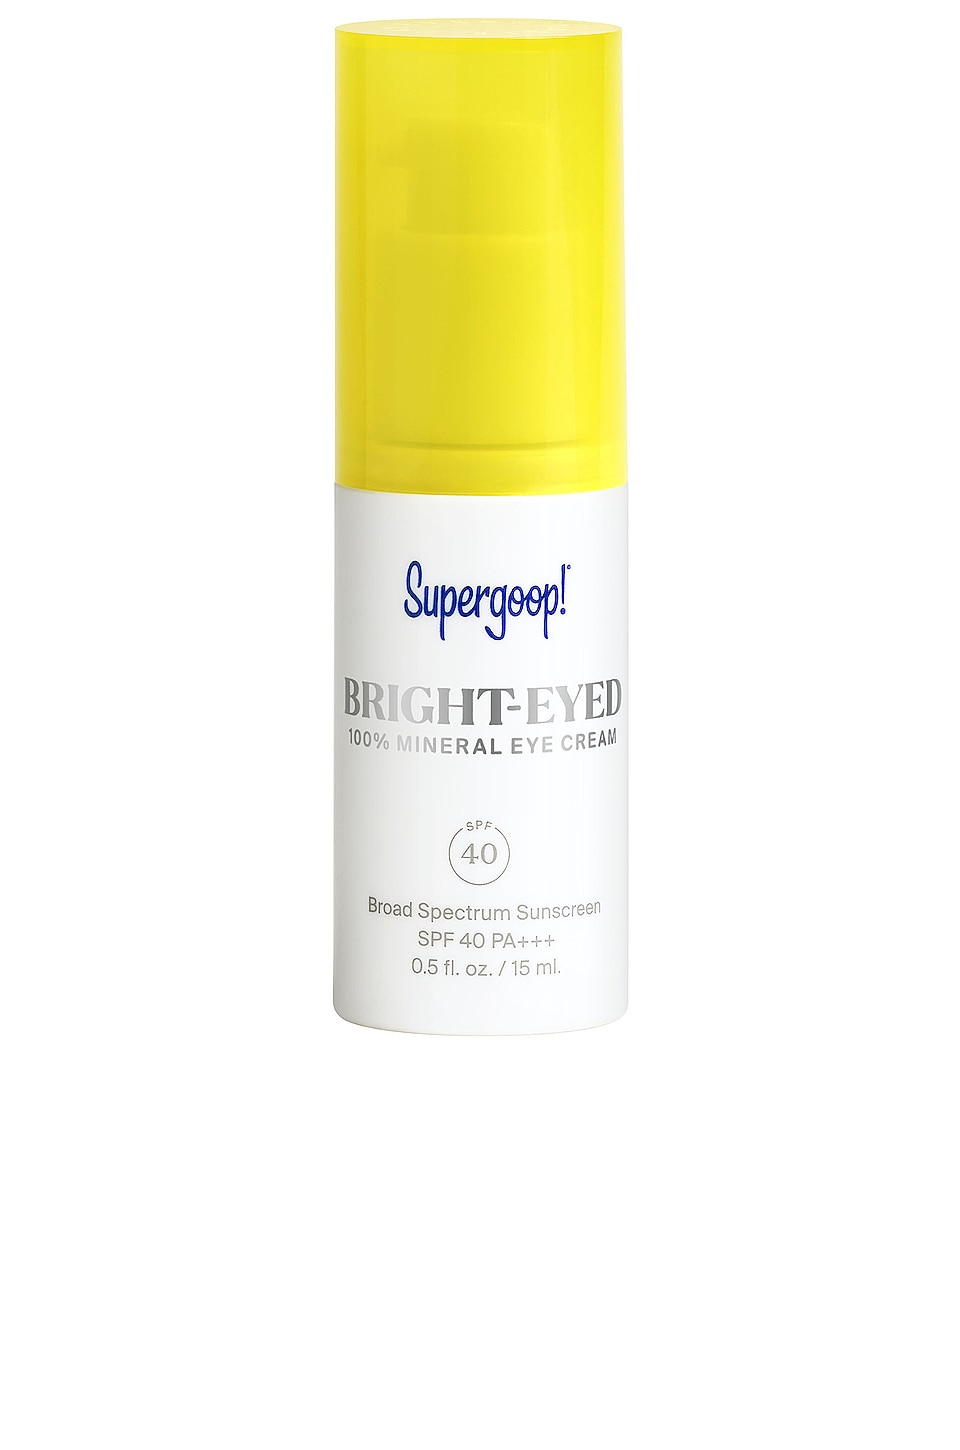 Supergoop! Bright-Eyed SPF 40